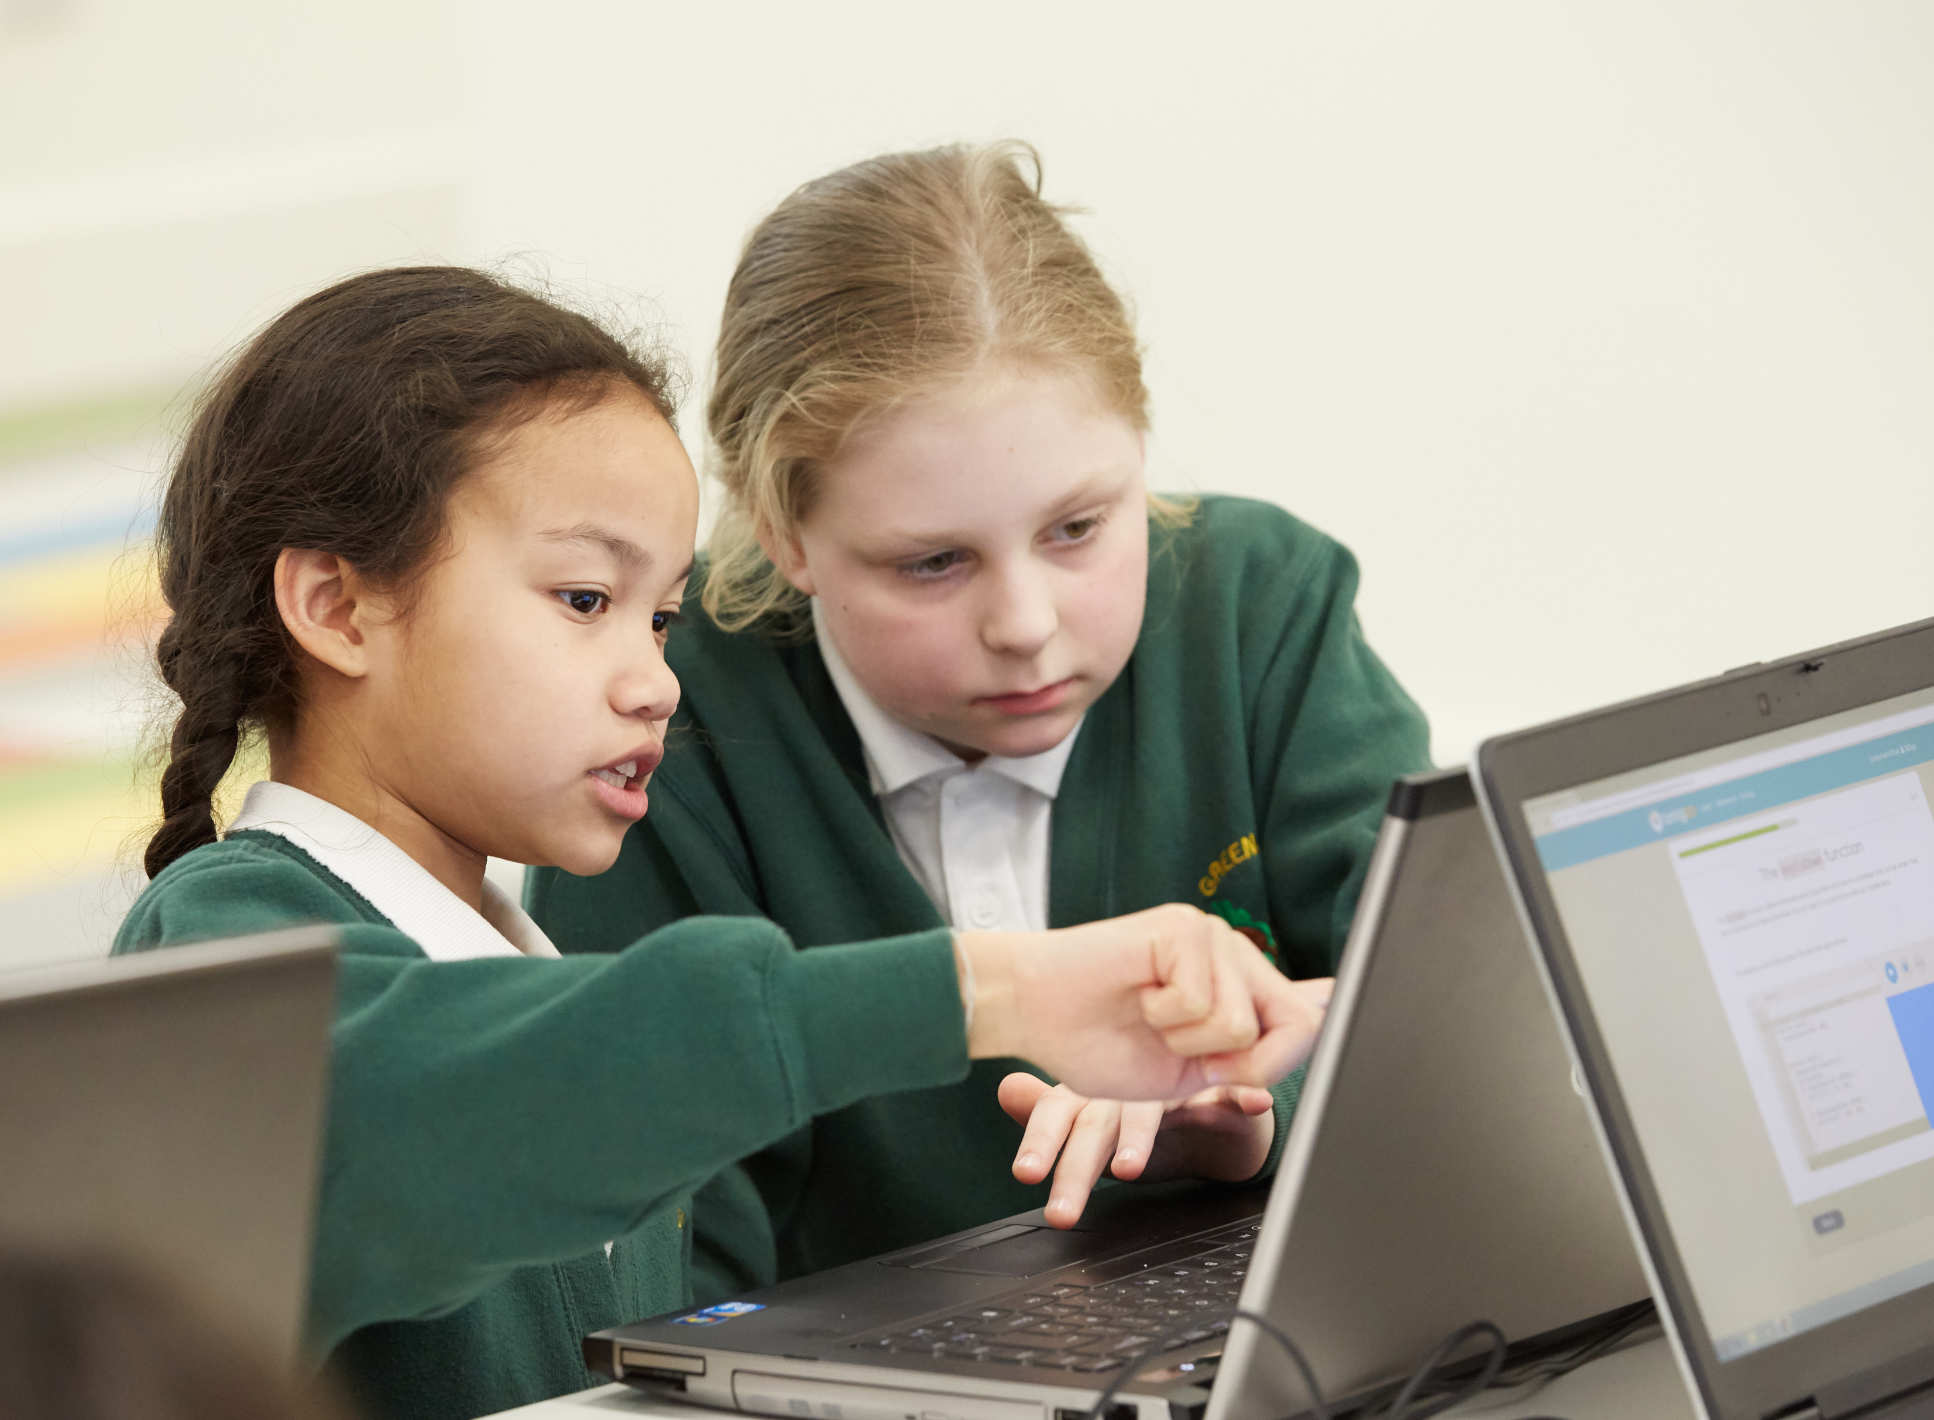 two girls focus on a laptop screen image